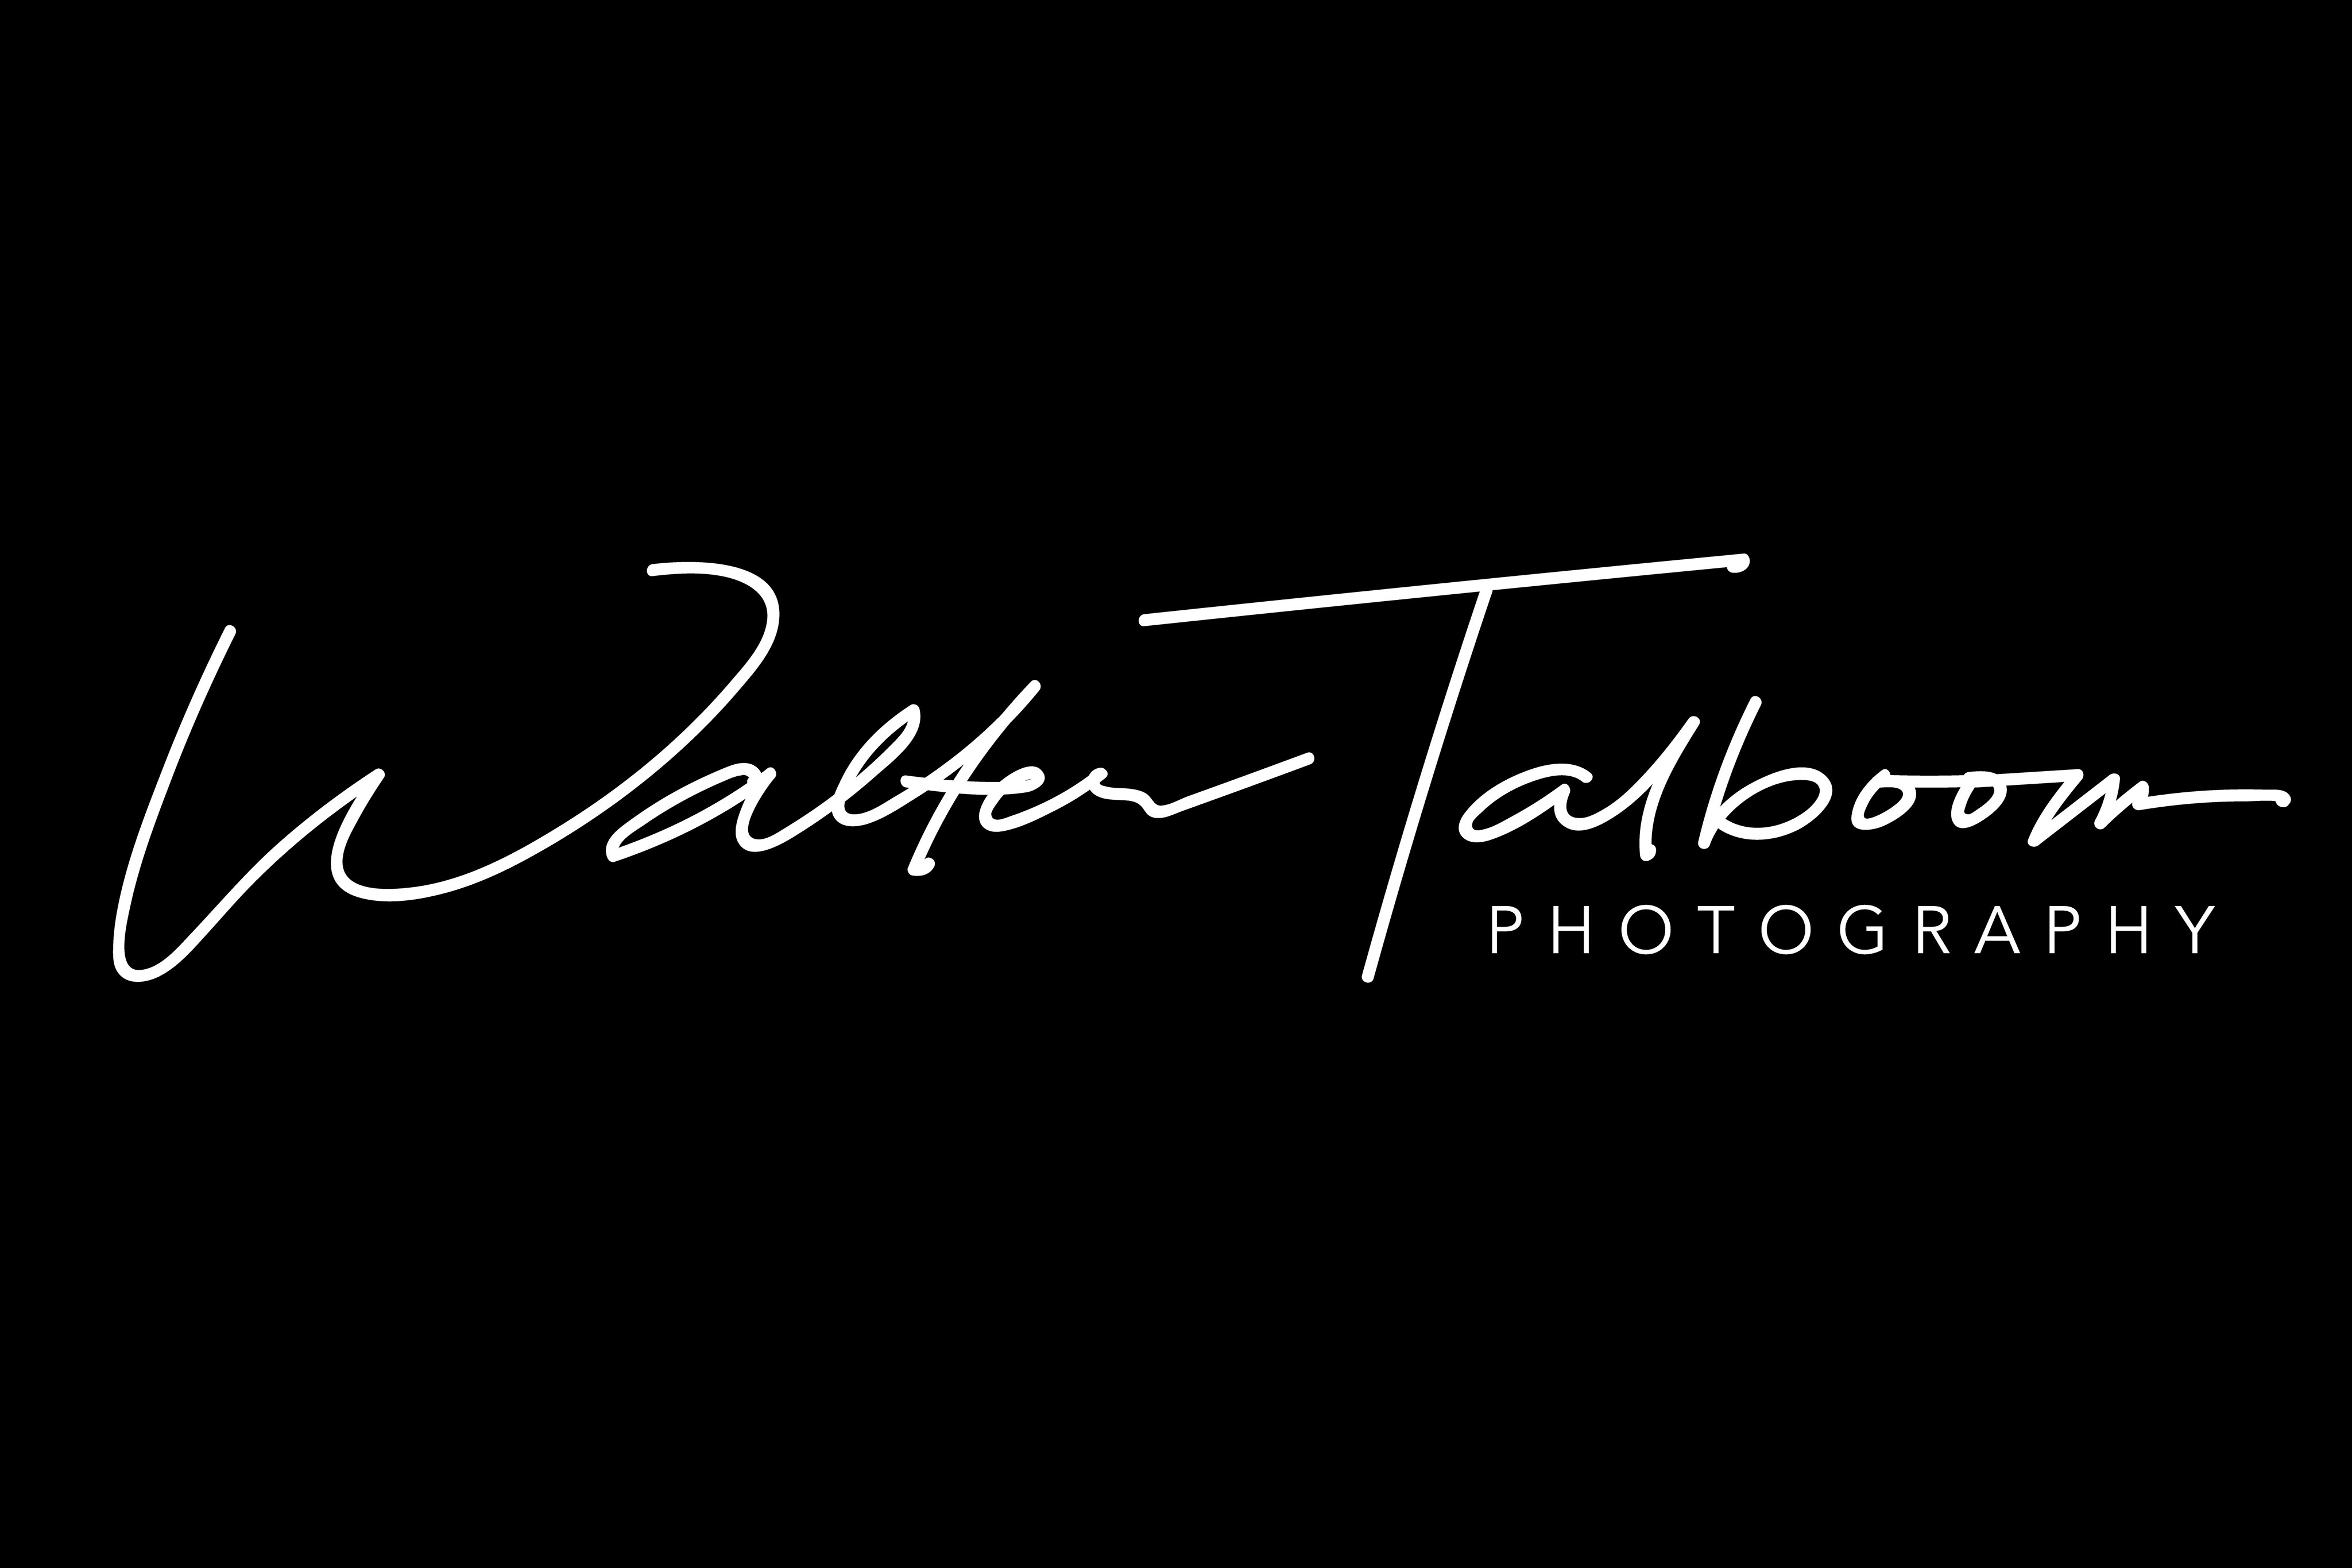 Walter Talboom